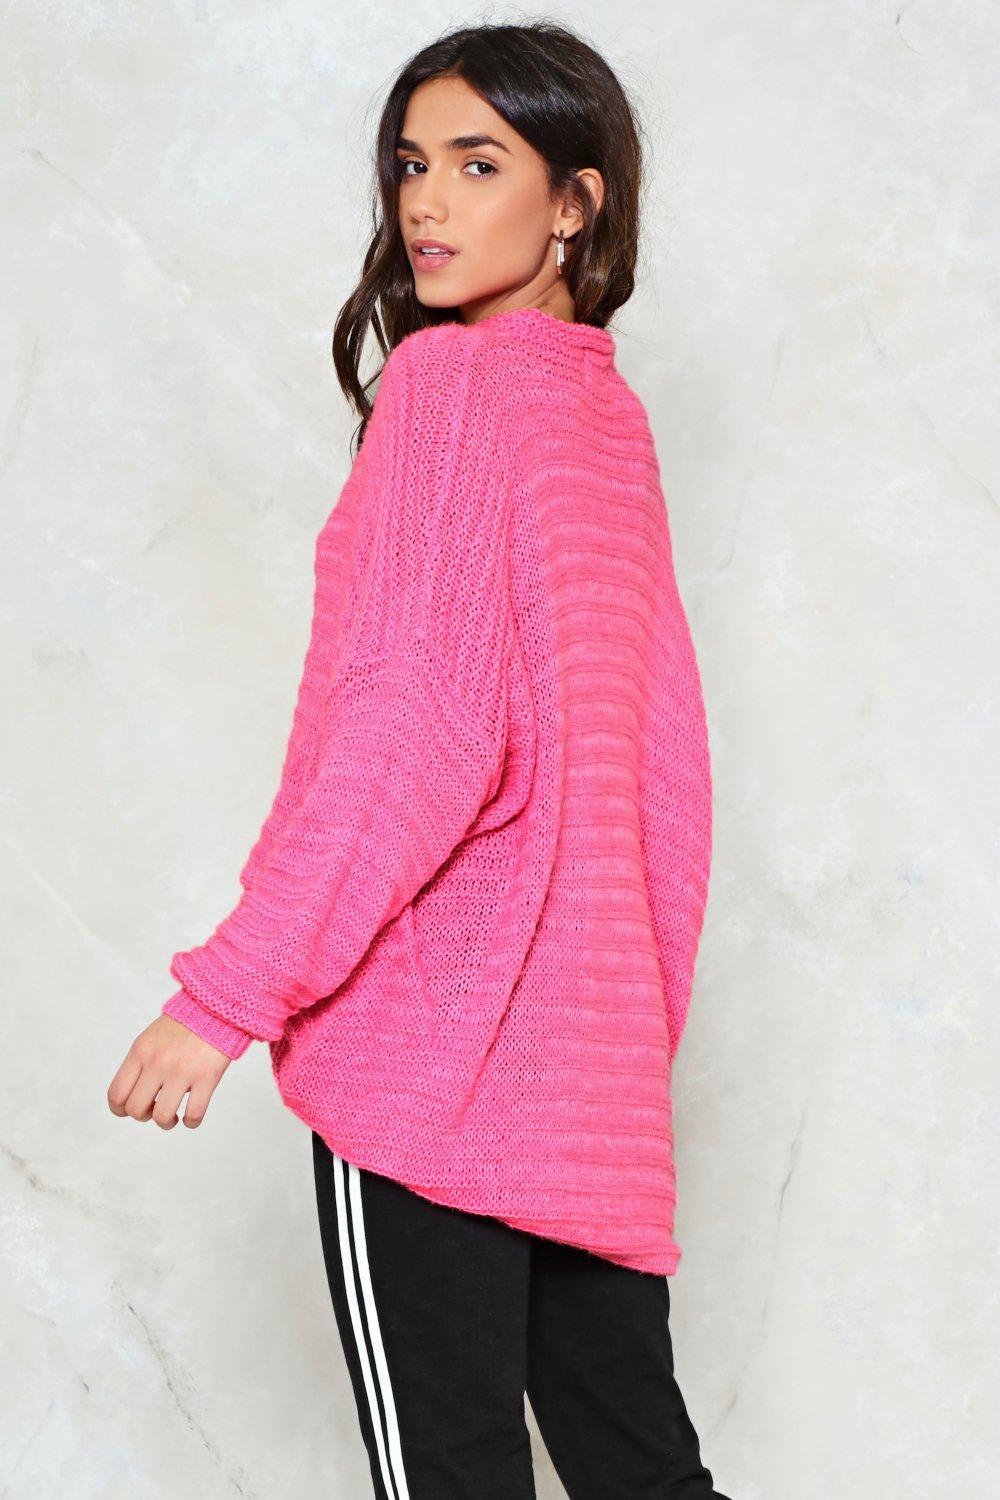 Give Knit a Rest Oversized Sweater | Shop Clothes at Nasty Gal!